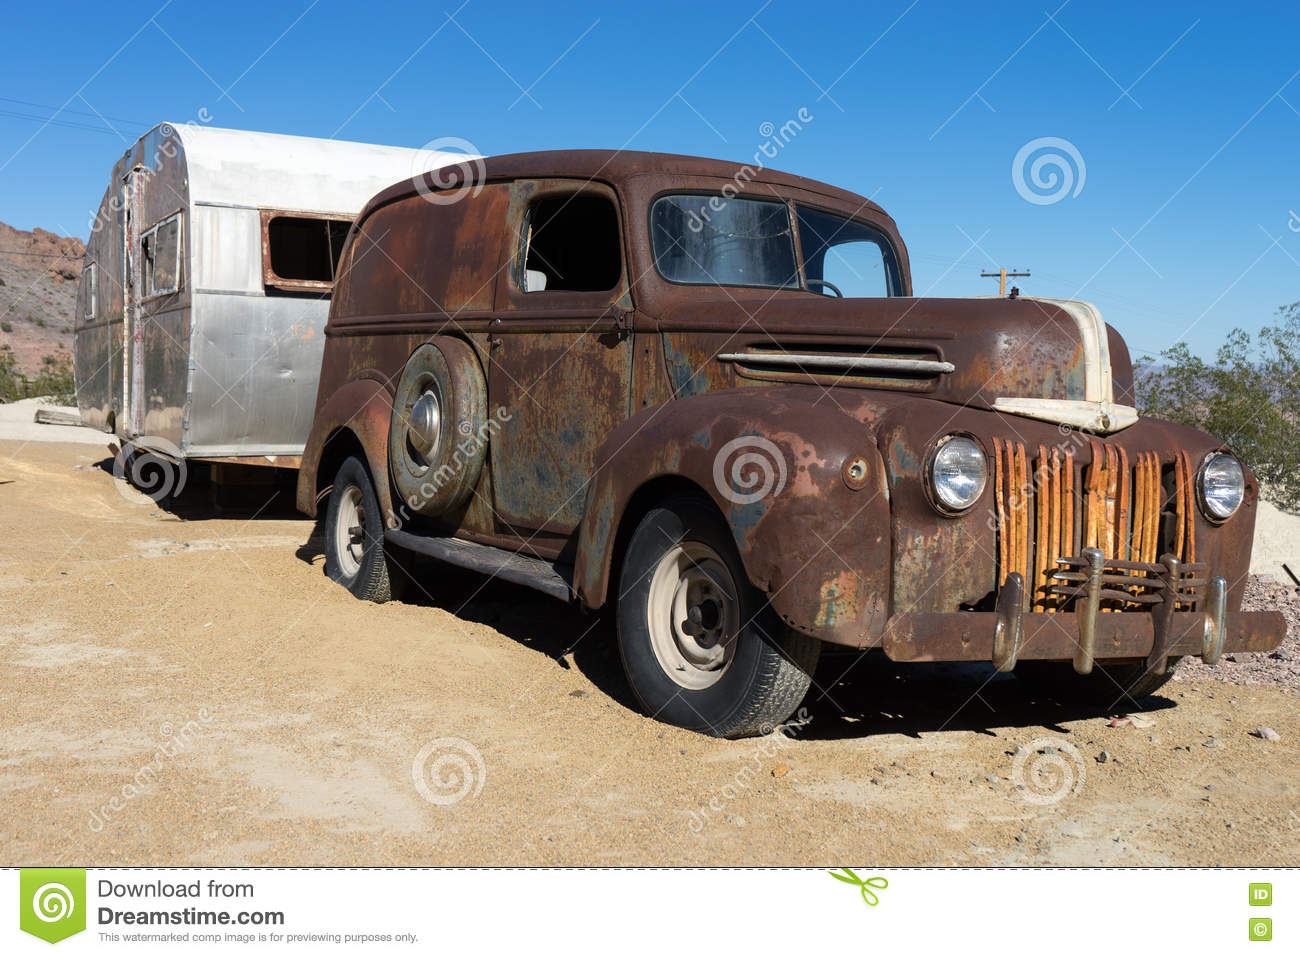 Vintage Rusty Car And Trailer In The Desert Stock Image - Image of ...